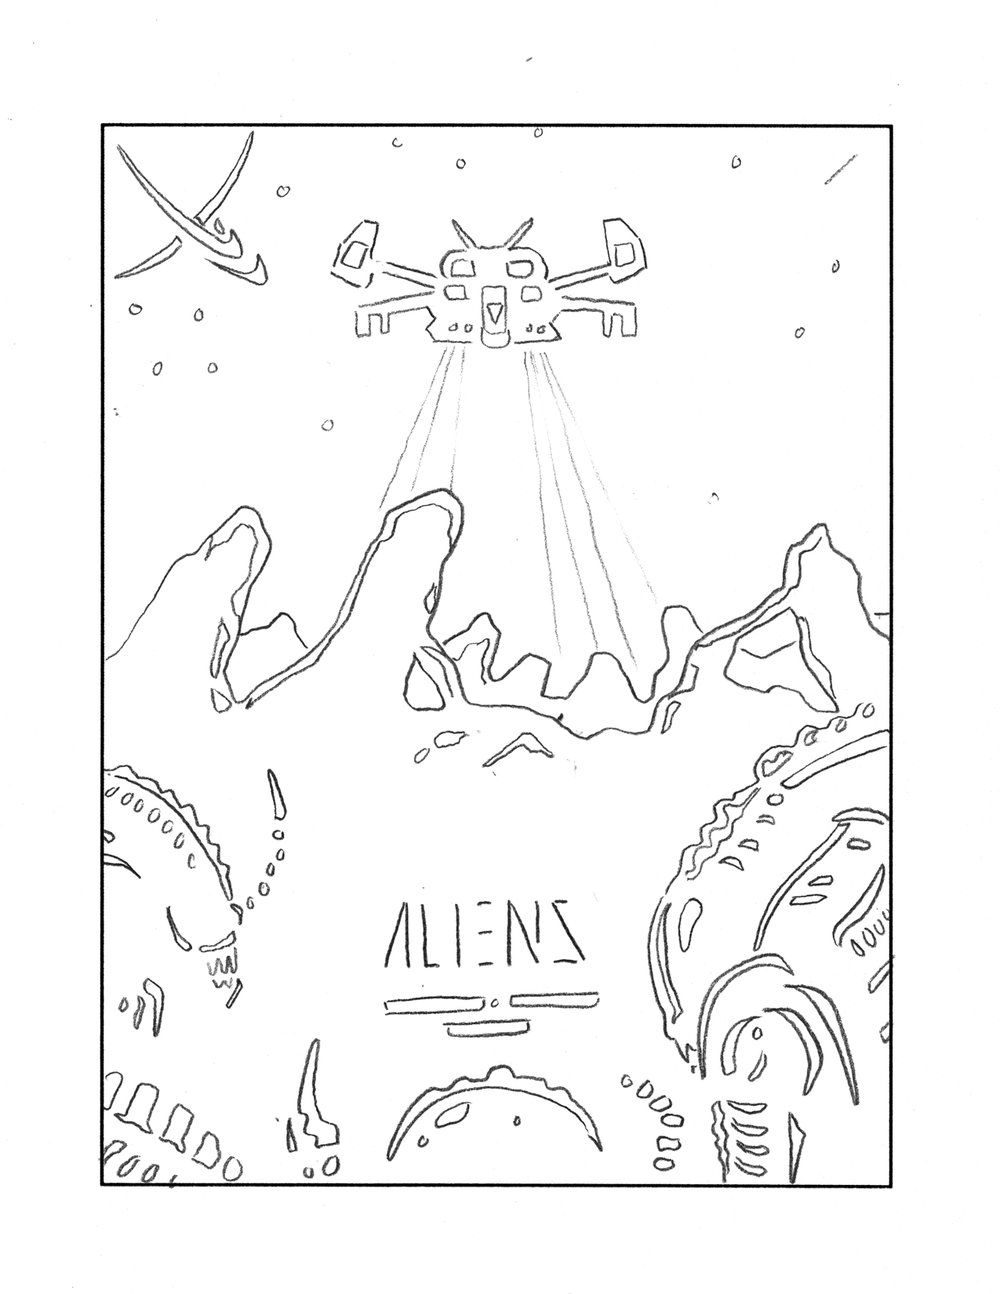 ALIENS_Roughs-05a.jpg